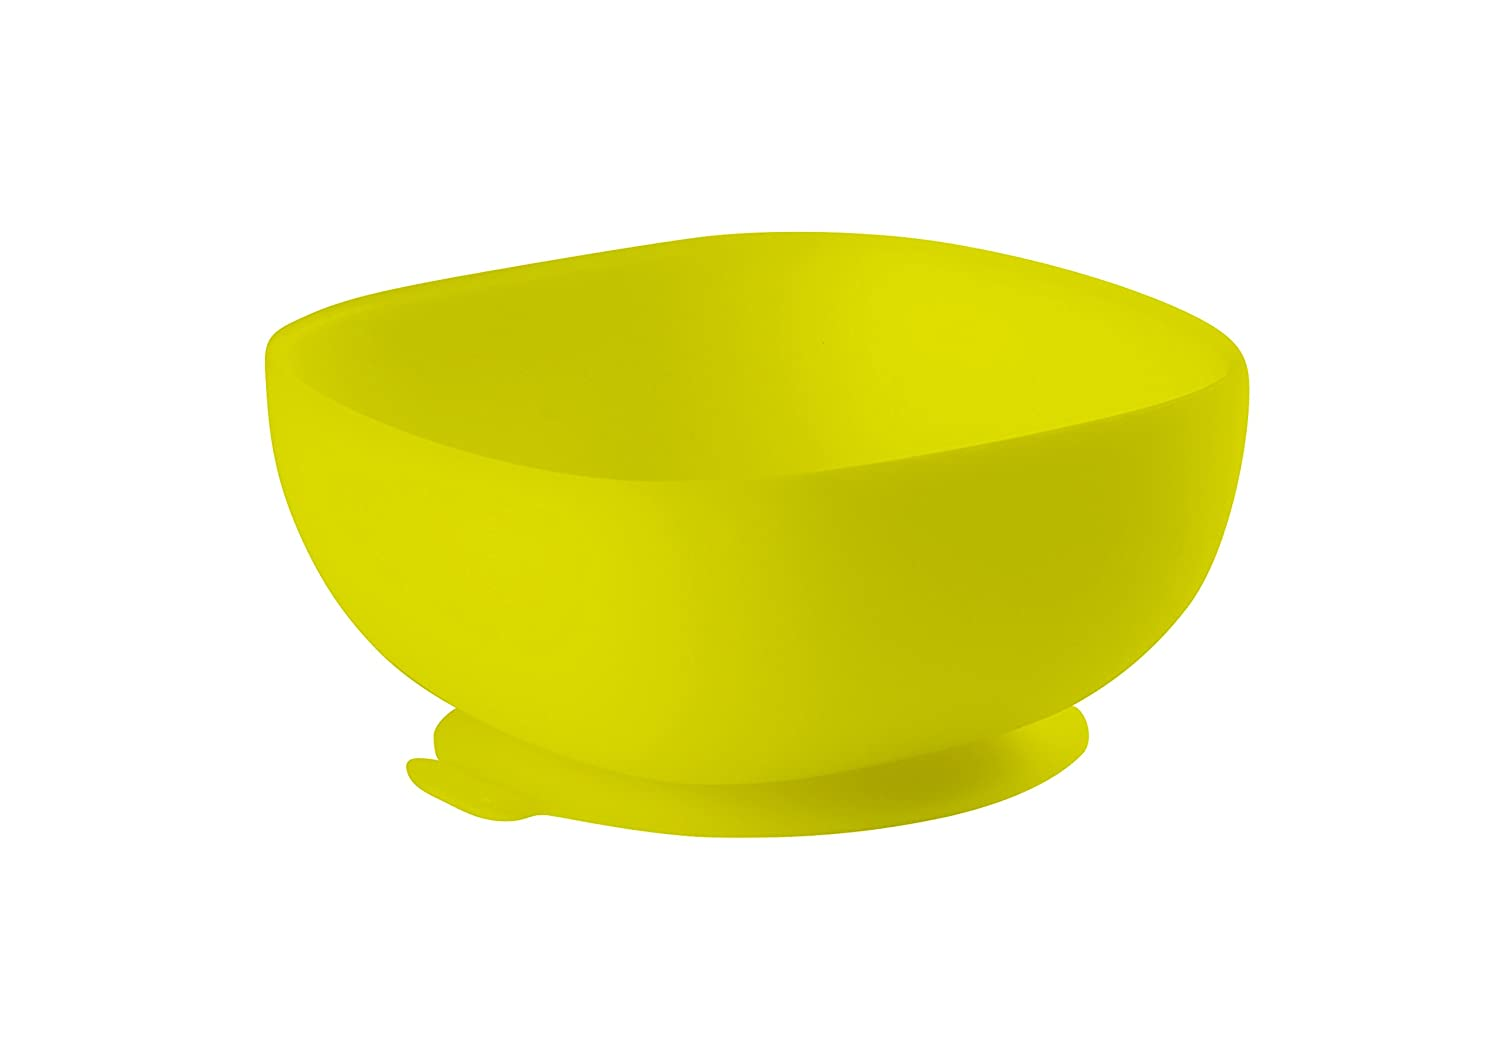 BEABA NEW Silicone Suction Bowl - New products world's highest quality popular Soft Unbreakable Suctio Non-Slip